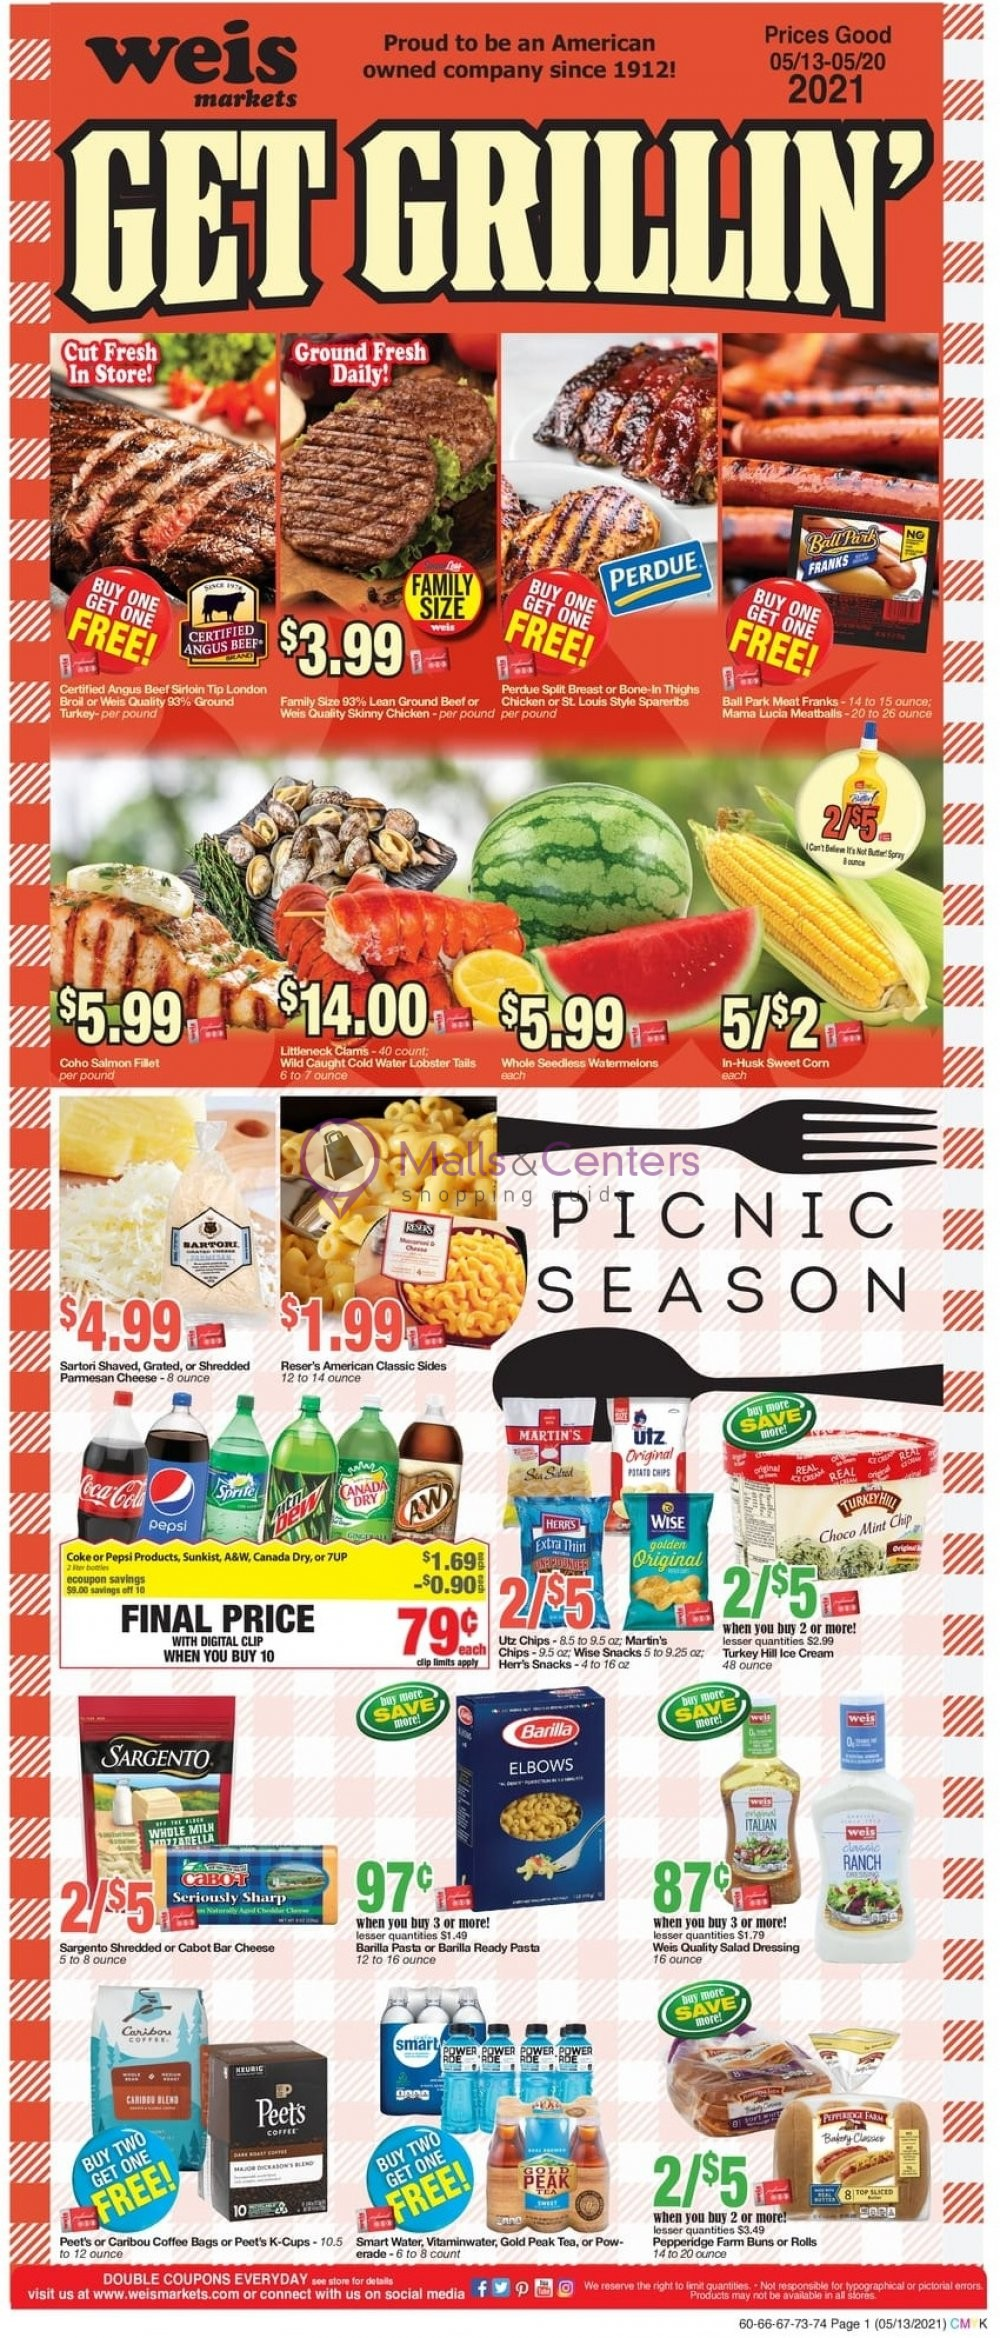 weekly ads Weis Markets - page 1 - mallscenters.com